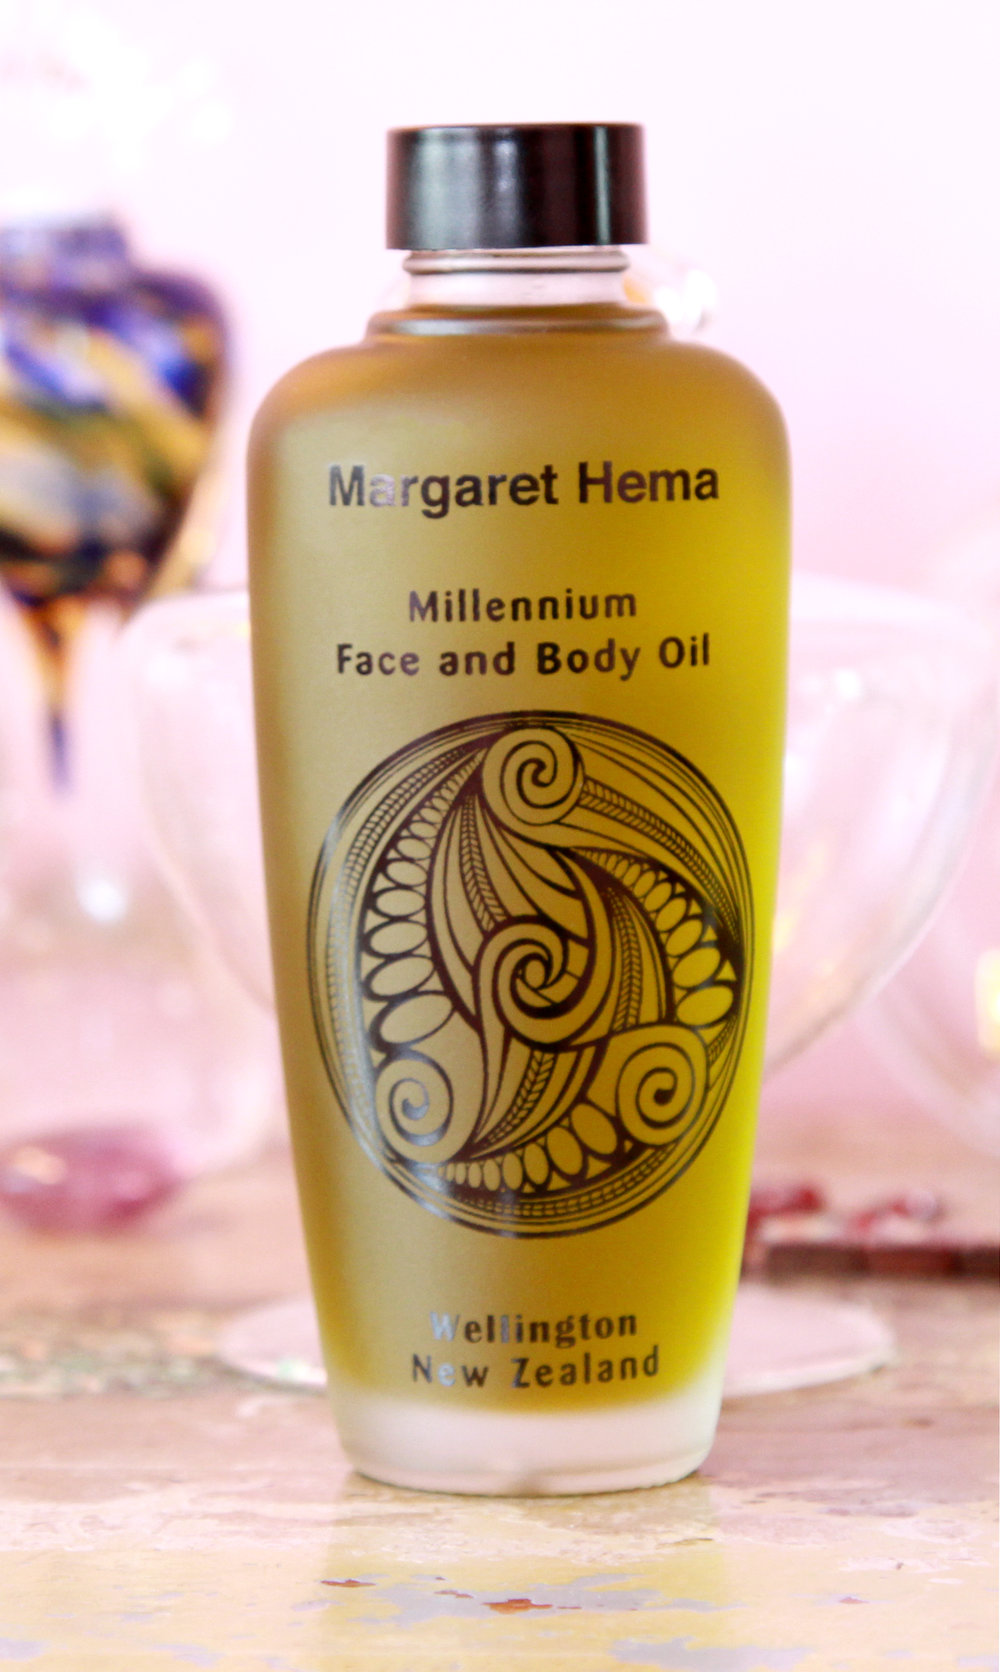 Millennium Face and Body Oil